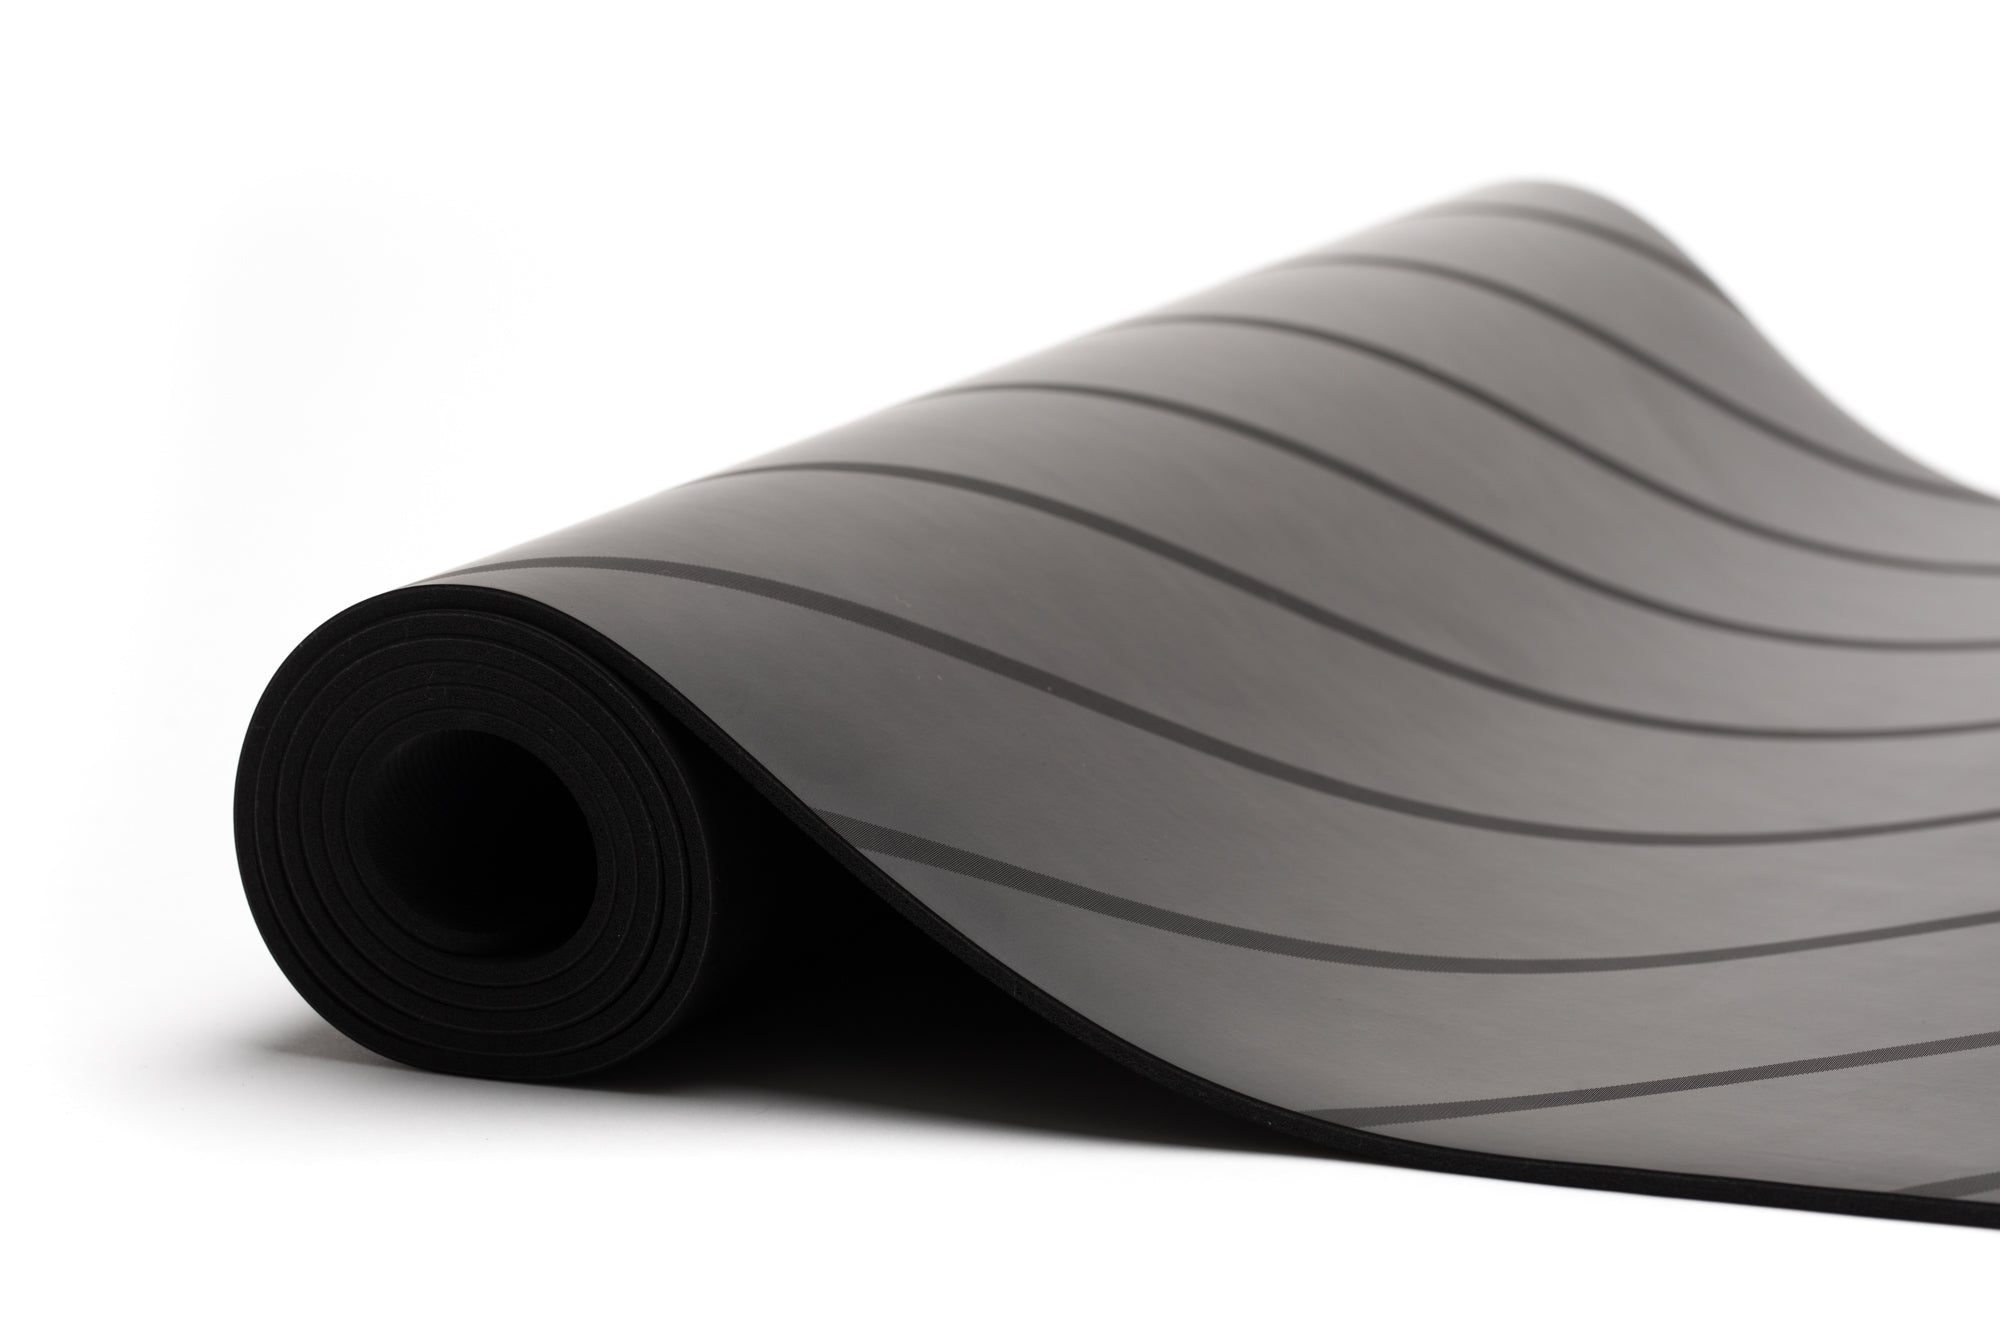 UNIT NINE Charcoal Stripe Rubber Yoga Mat & ADD YOUR INITIALS 2